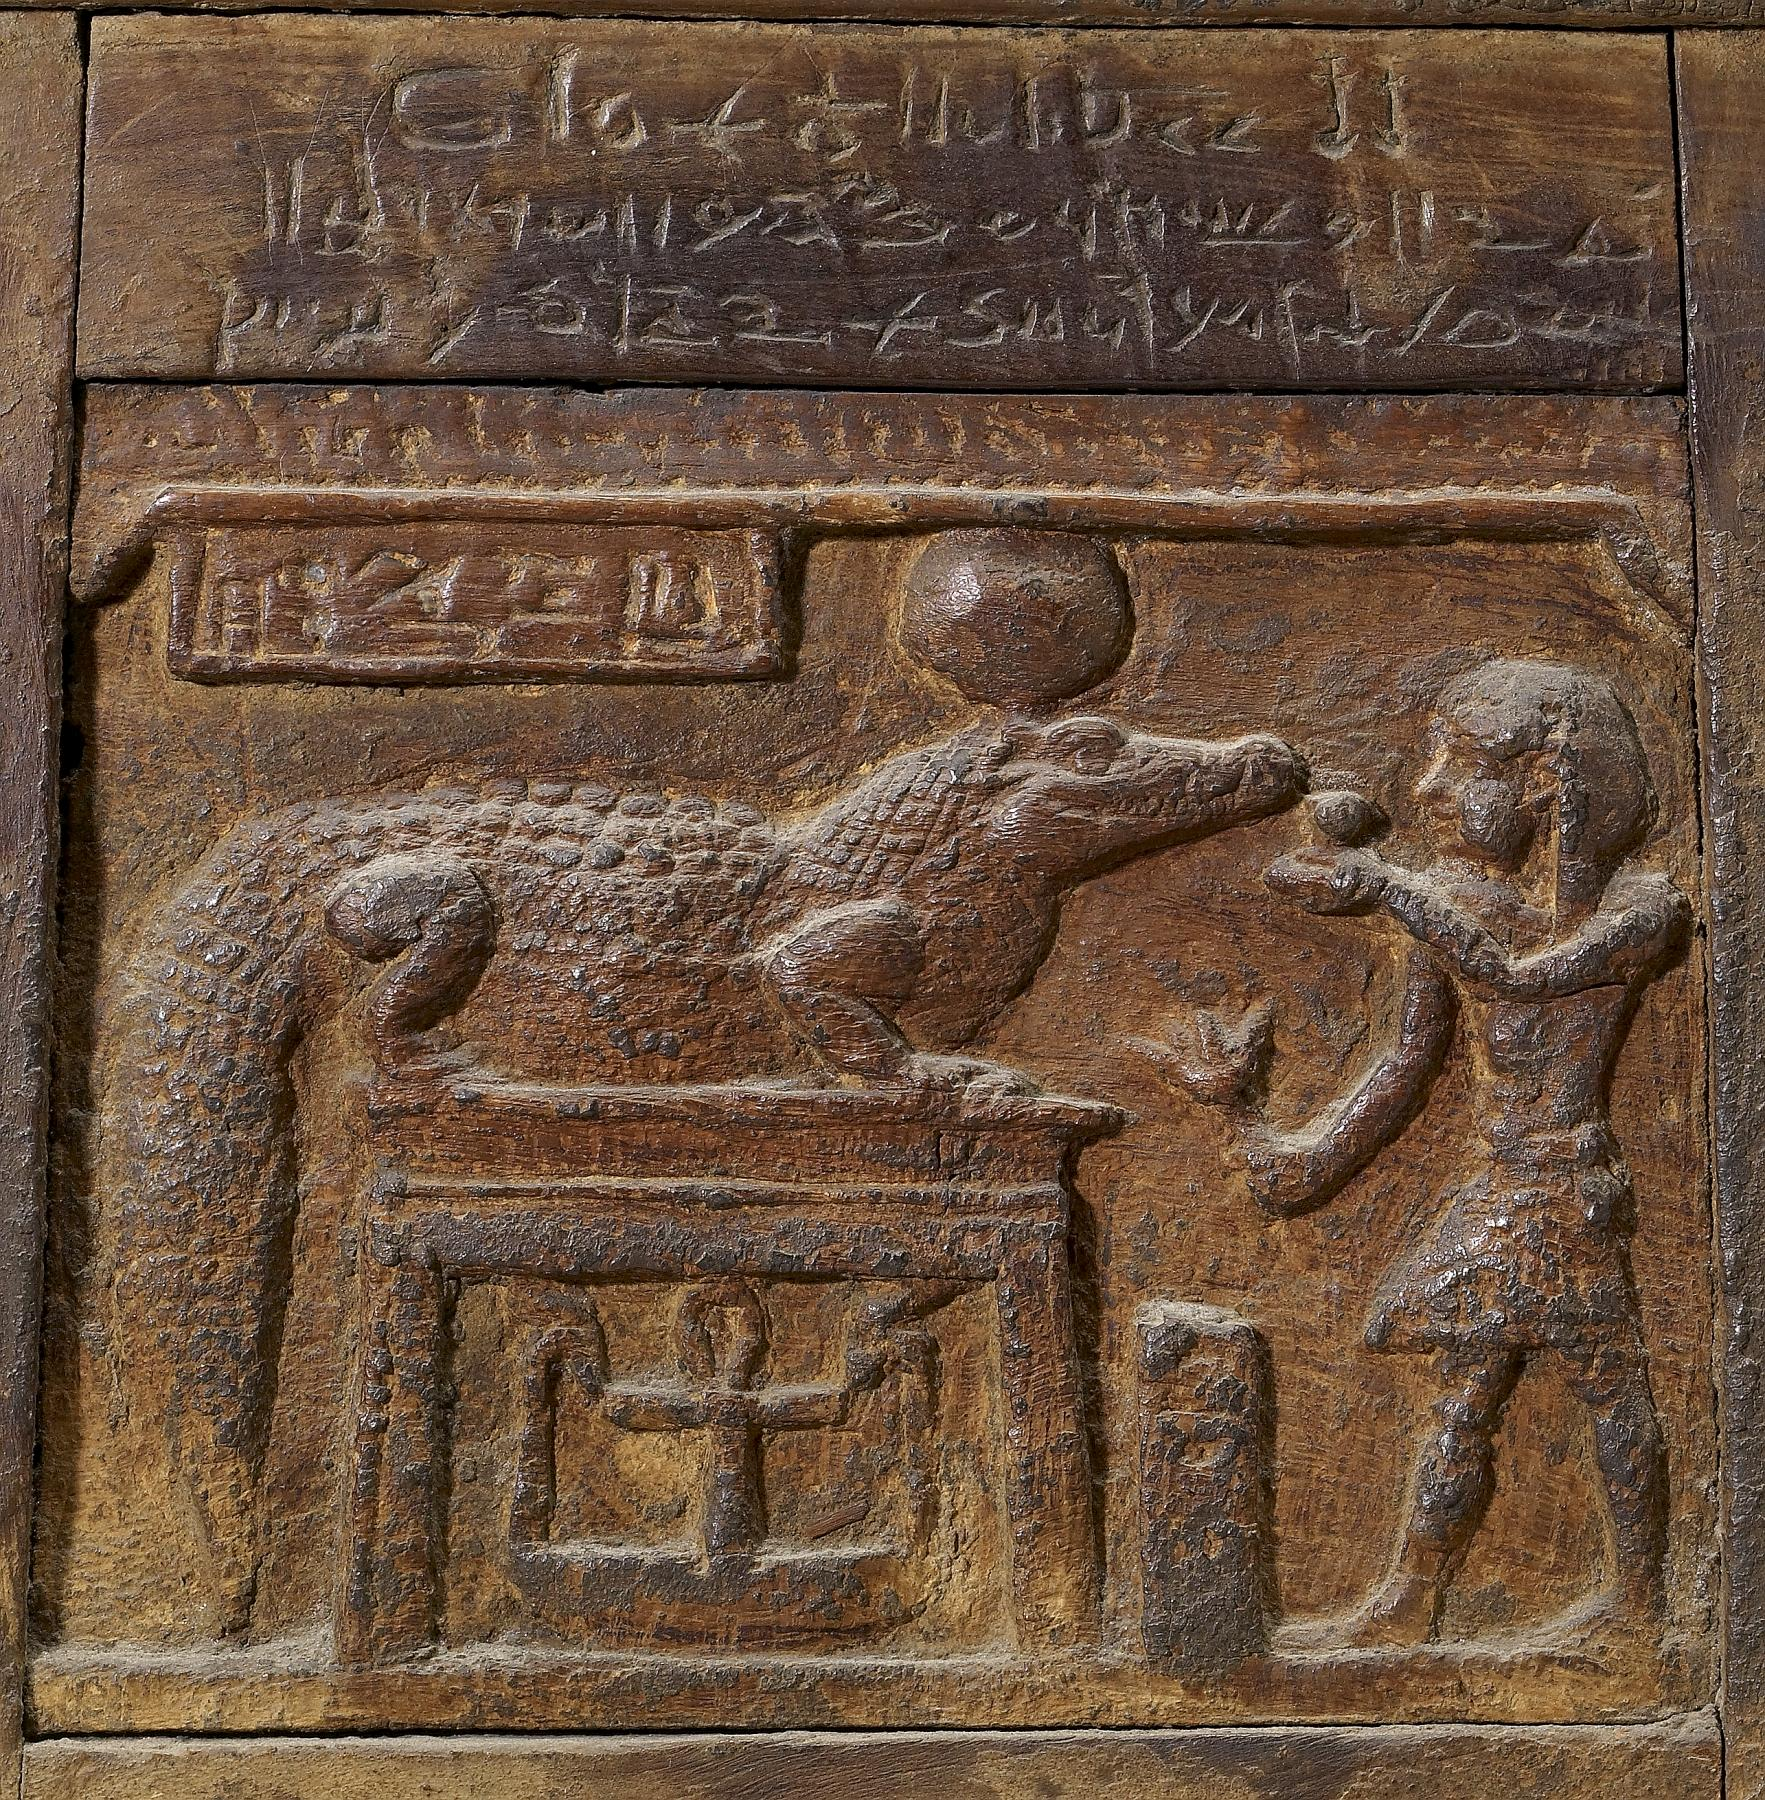 ancient egypt writing One of the main items of egyptian trade, and one of the permanent gifts to the world is ancient egypt writing on paper.